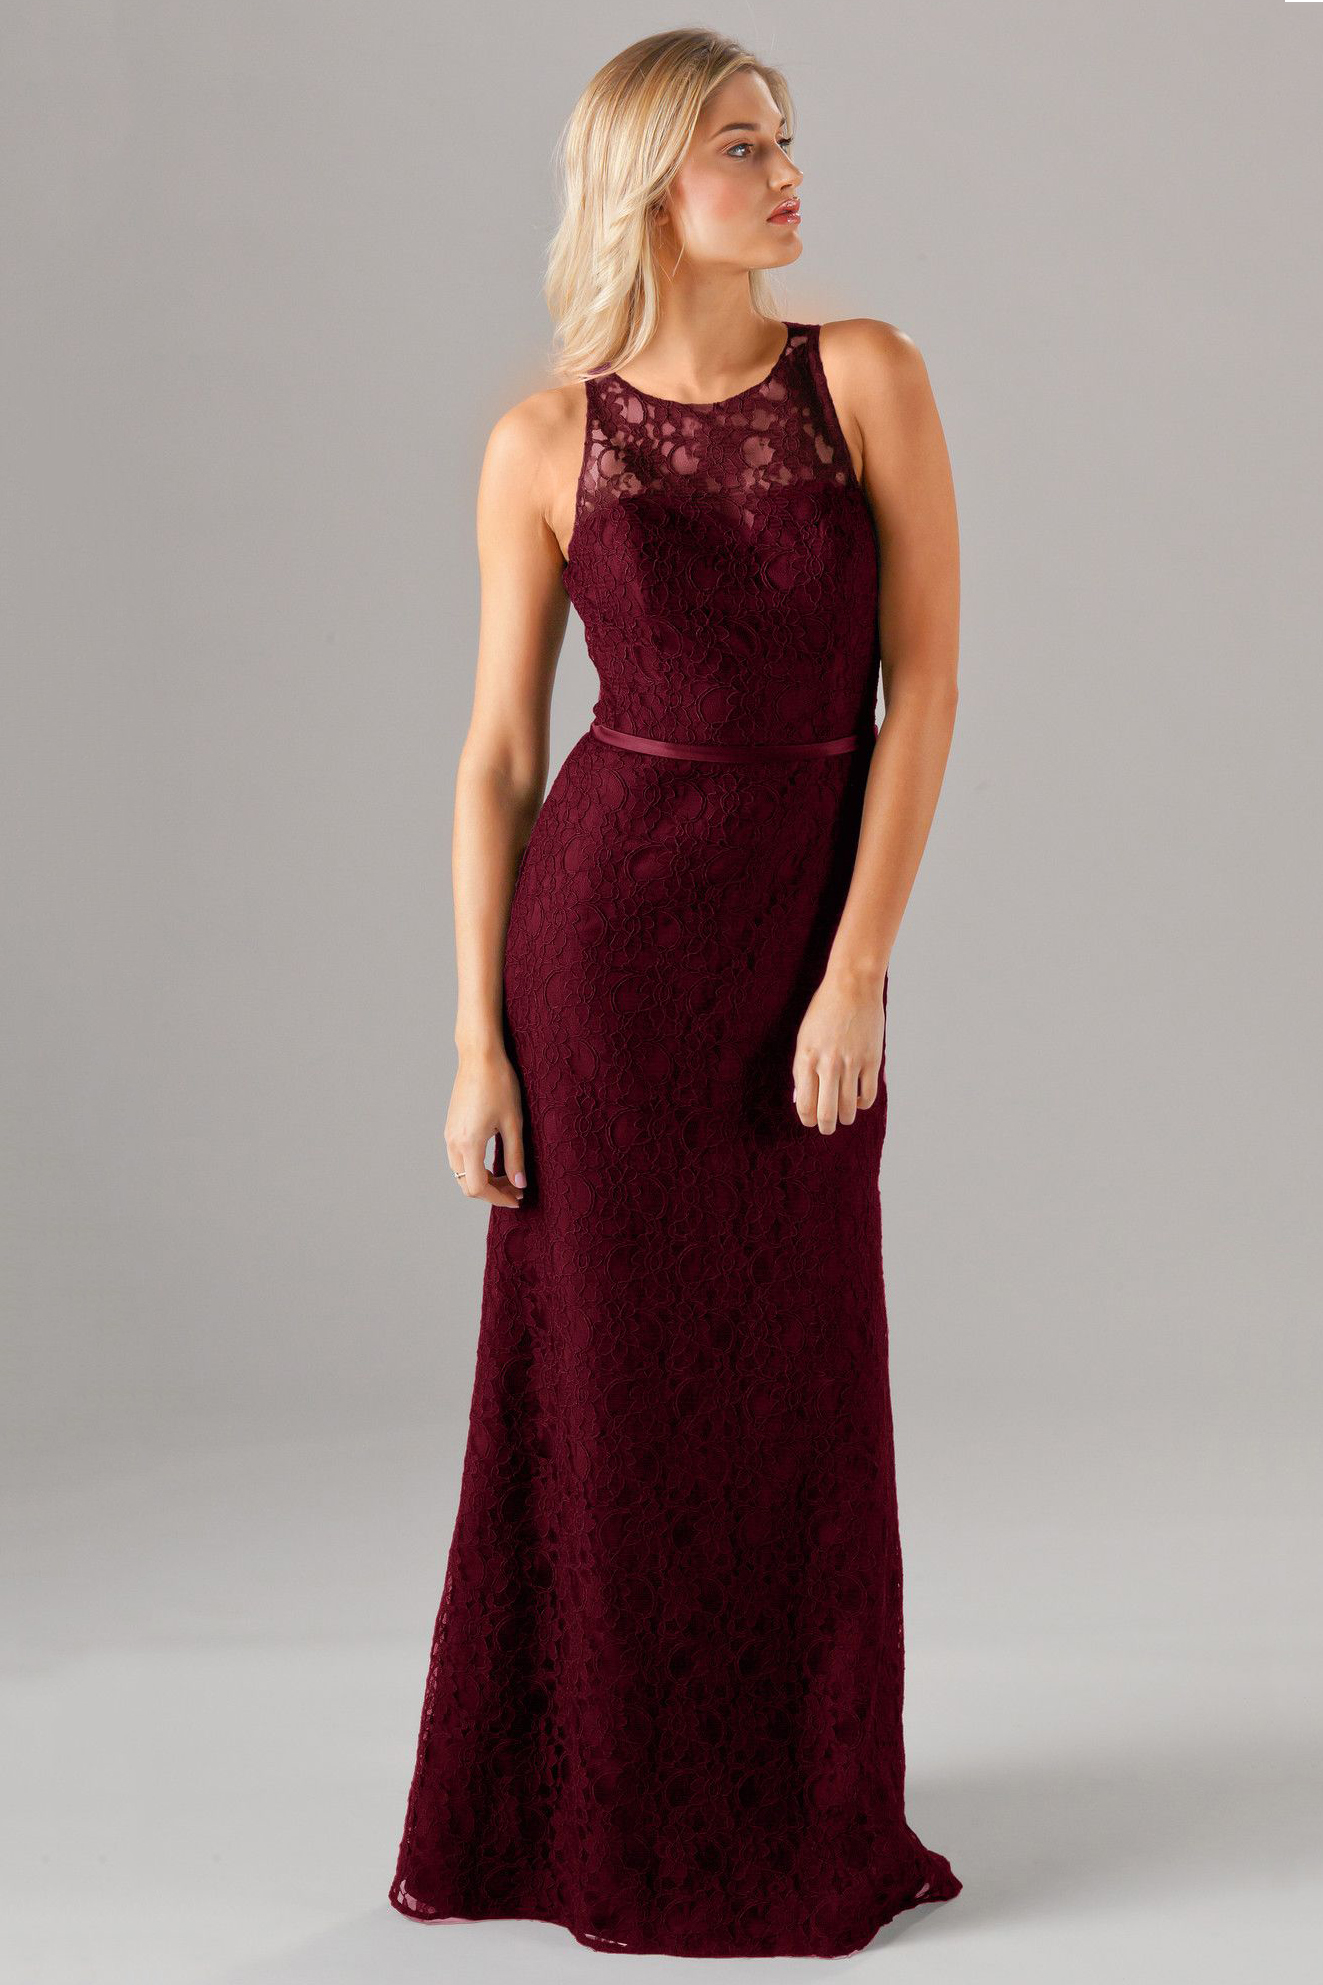 Sleeveless A-line Lace Bridesmaid Dress Slit with Ribbon